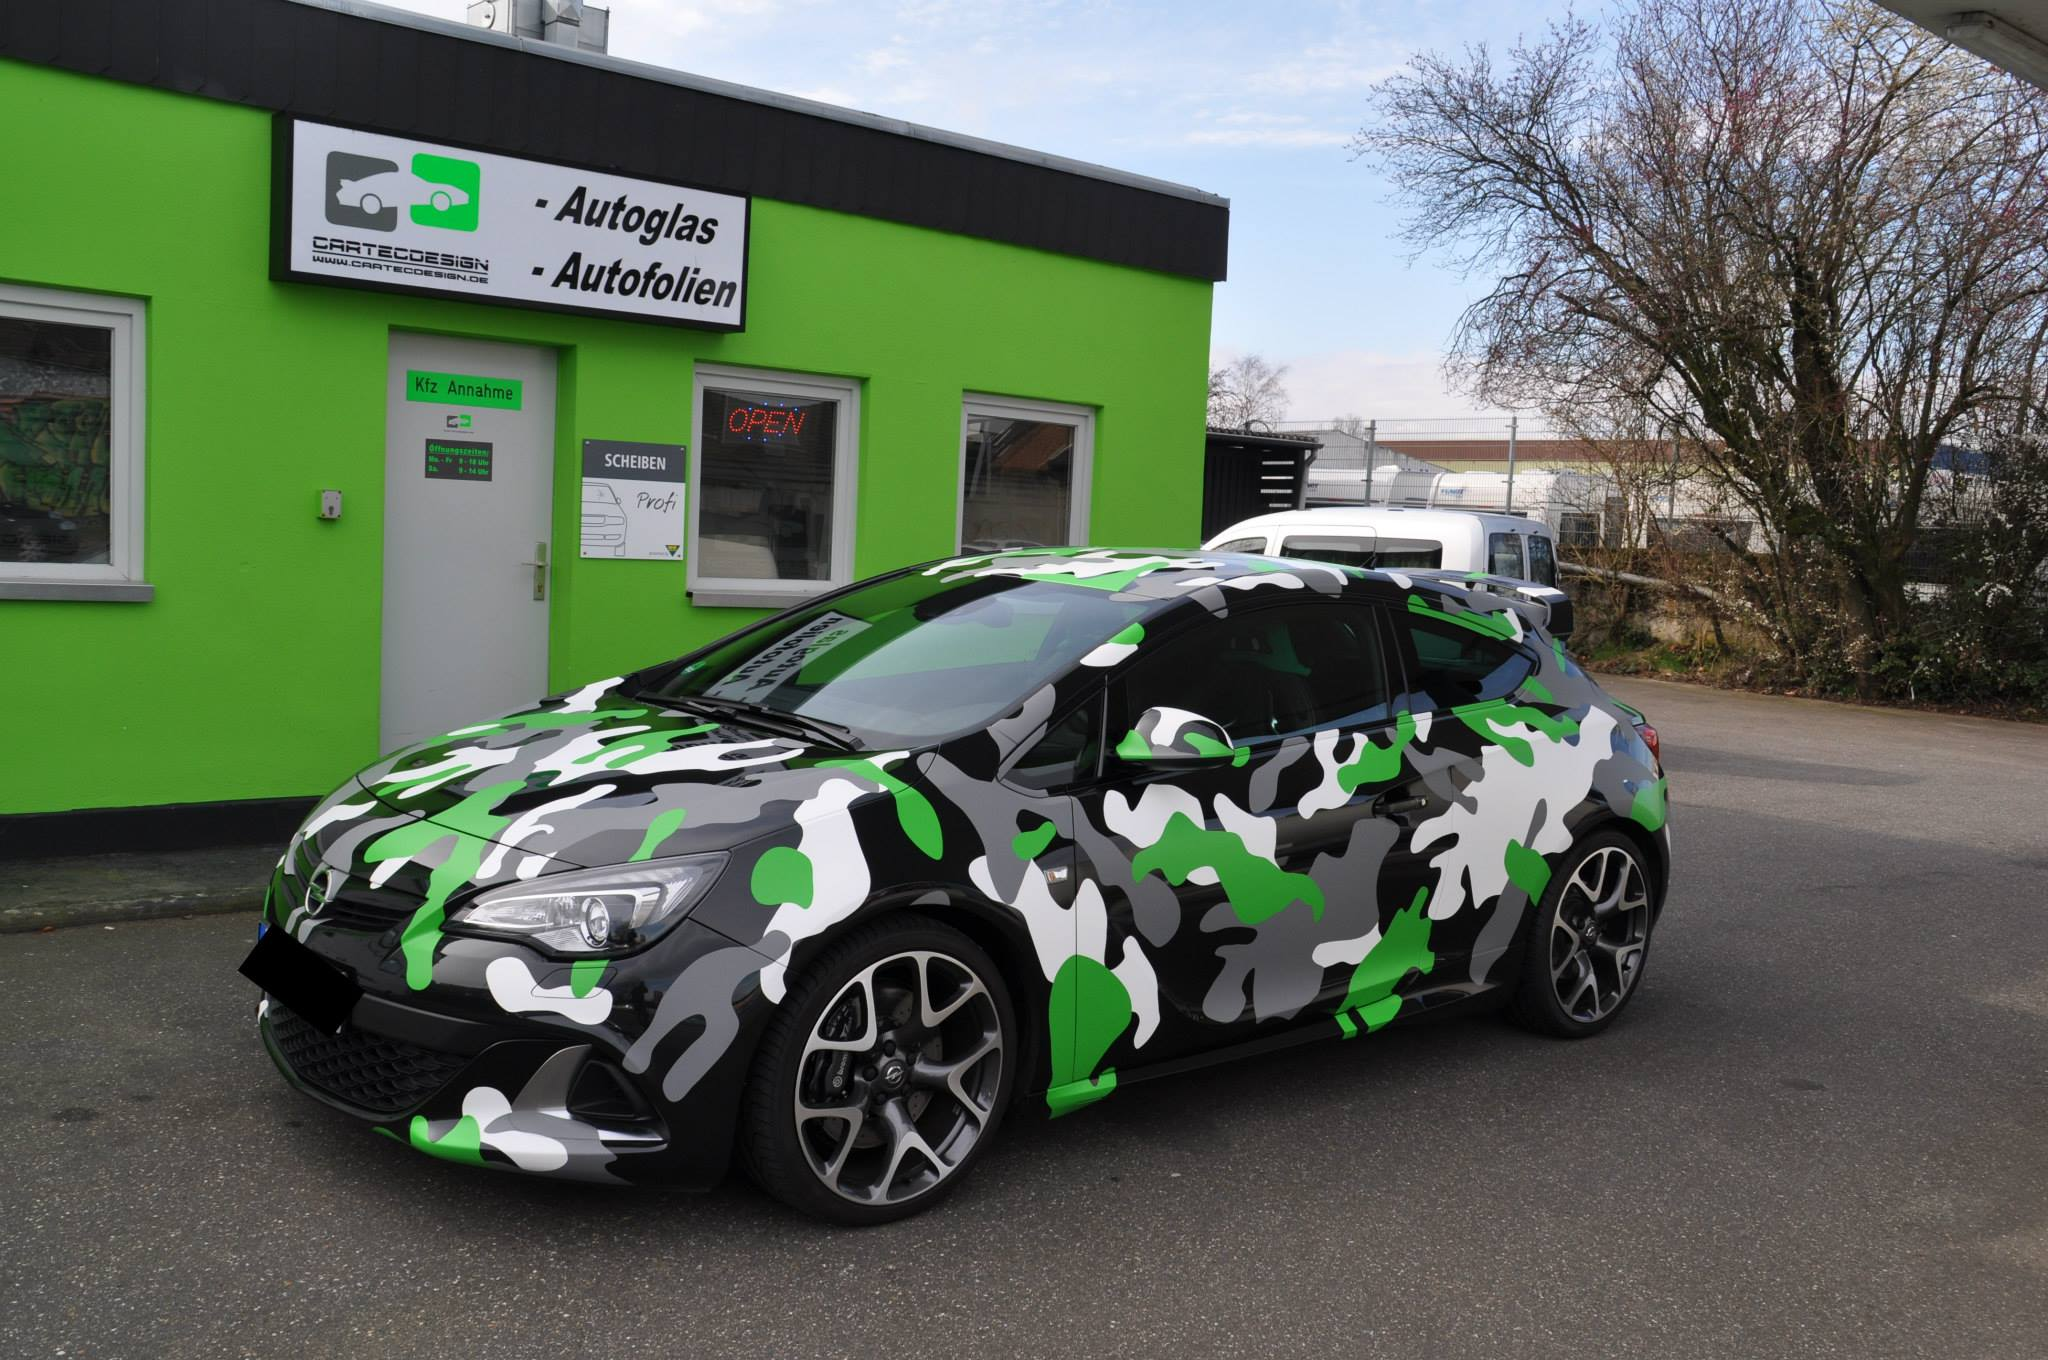 Opel Astra Opc In Camo Wrap Looks Tough Autoevolution